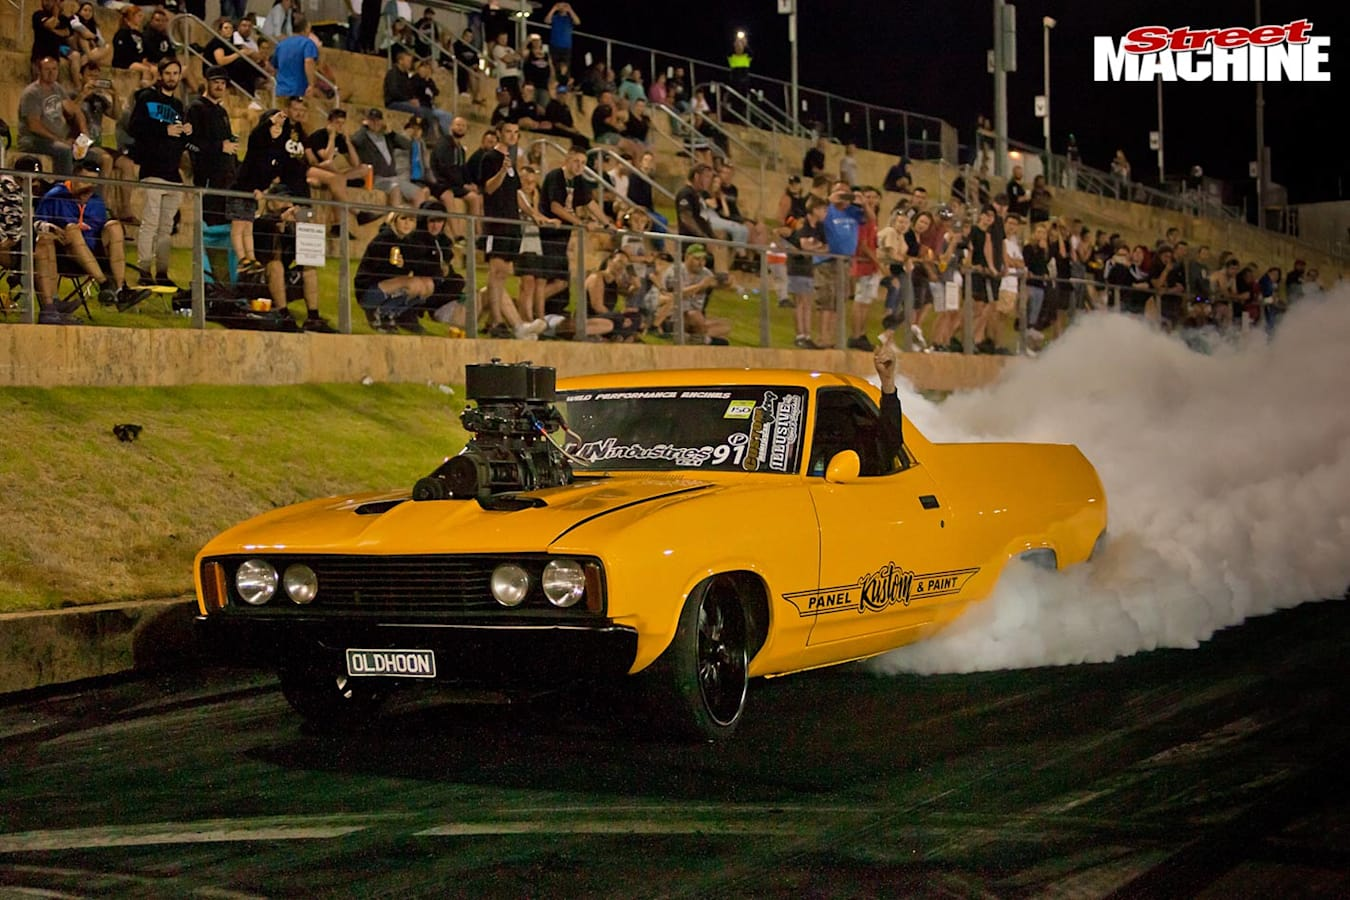 Ford falcon ute OLDHOON